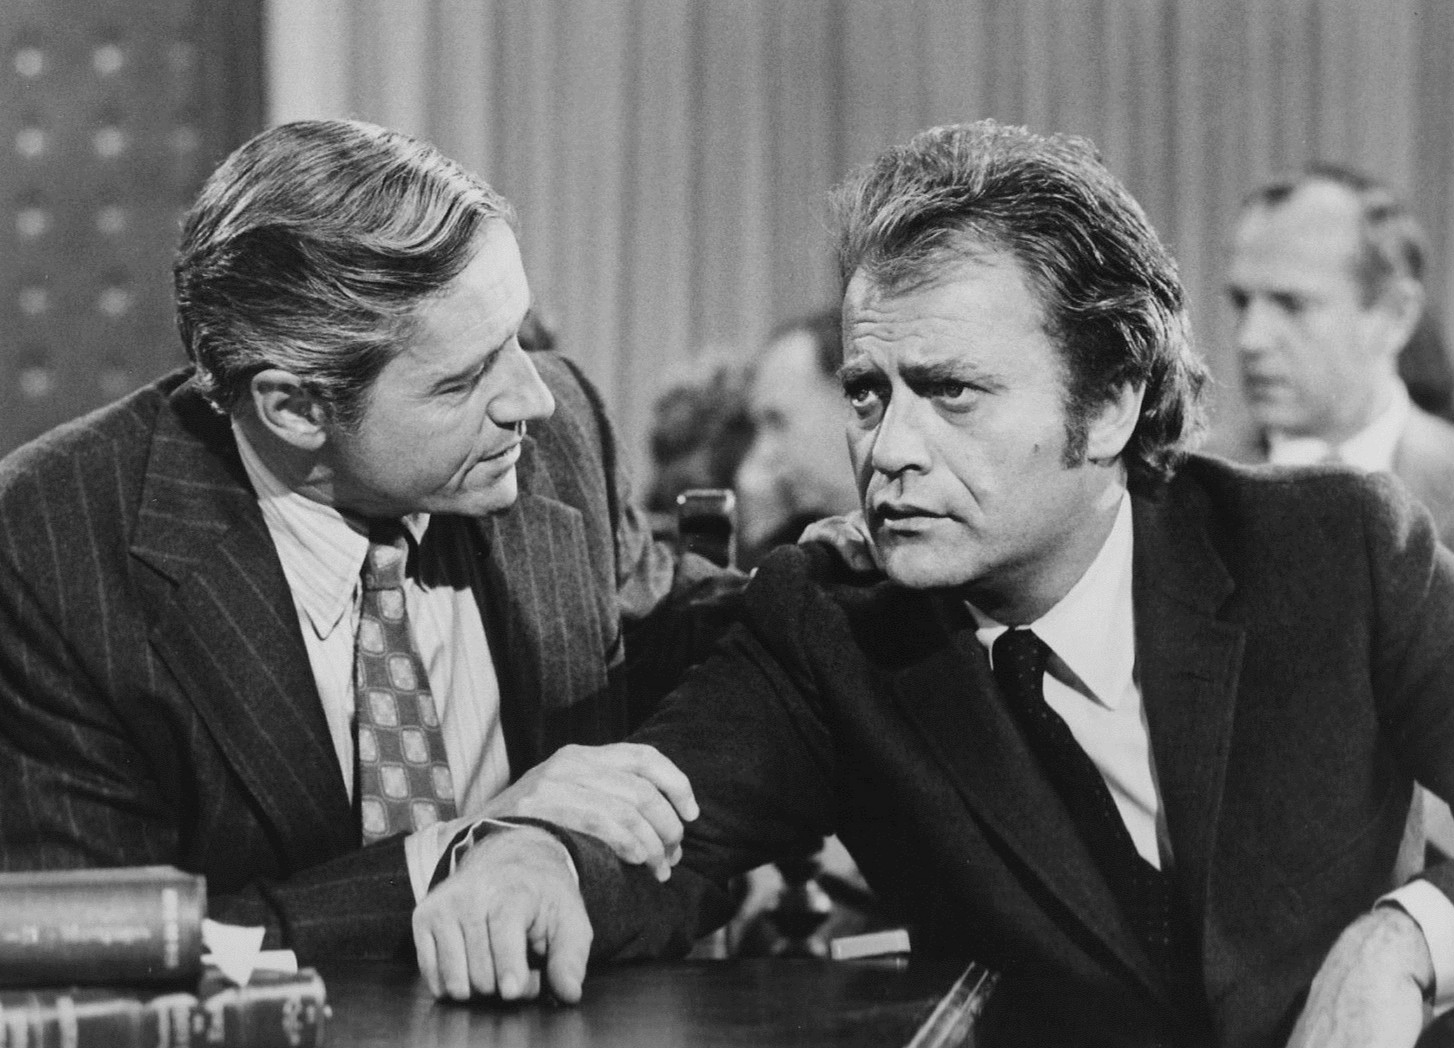 Arthur Hill and Vic Morrow in Owen Marshall, Counselor at Law (1971)